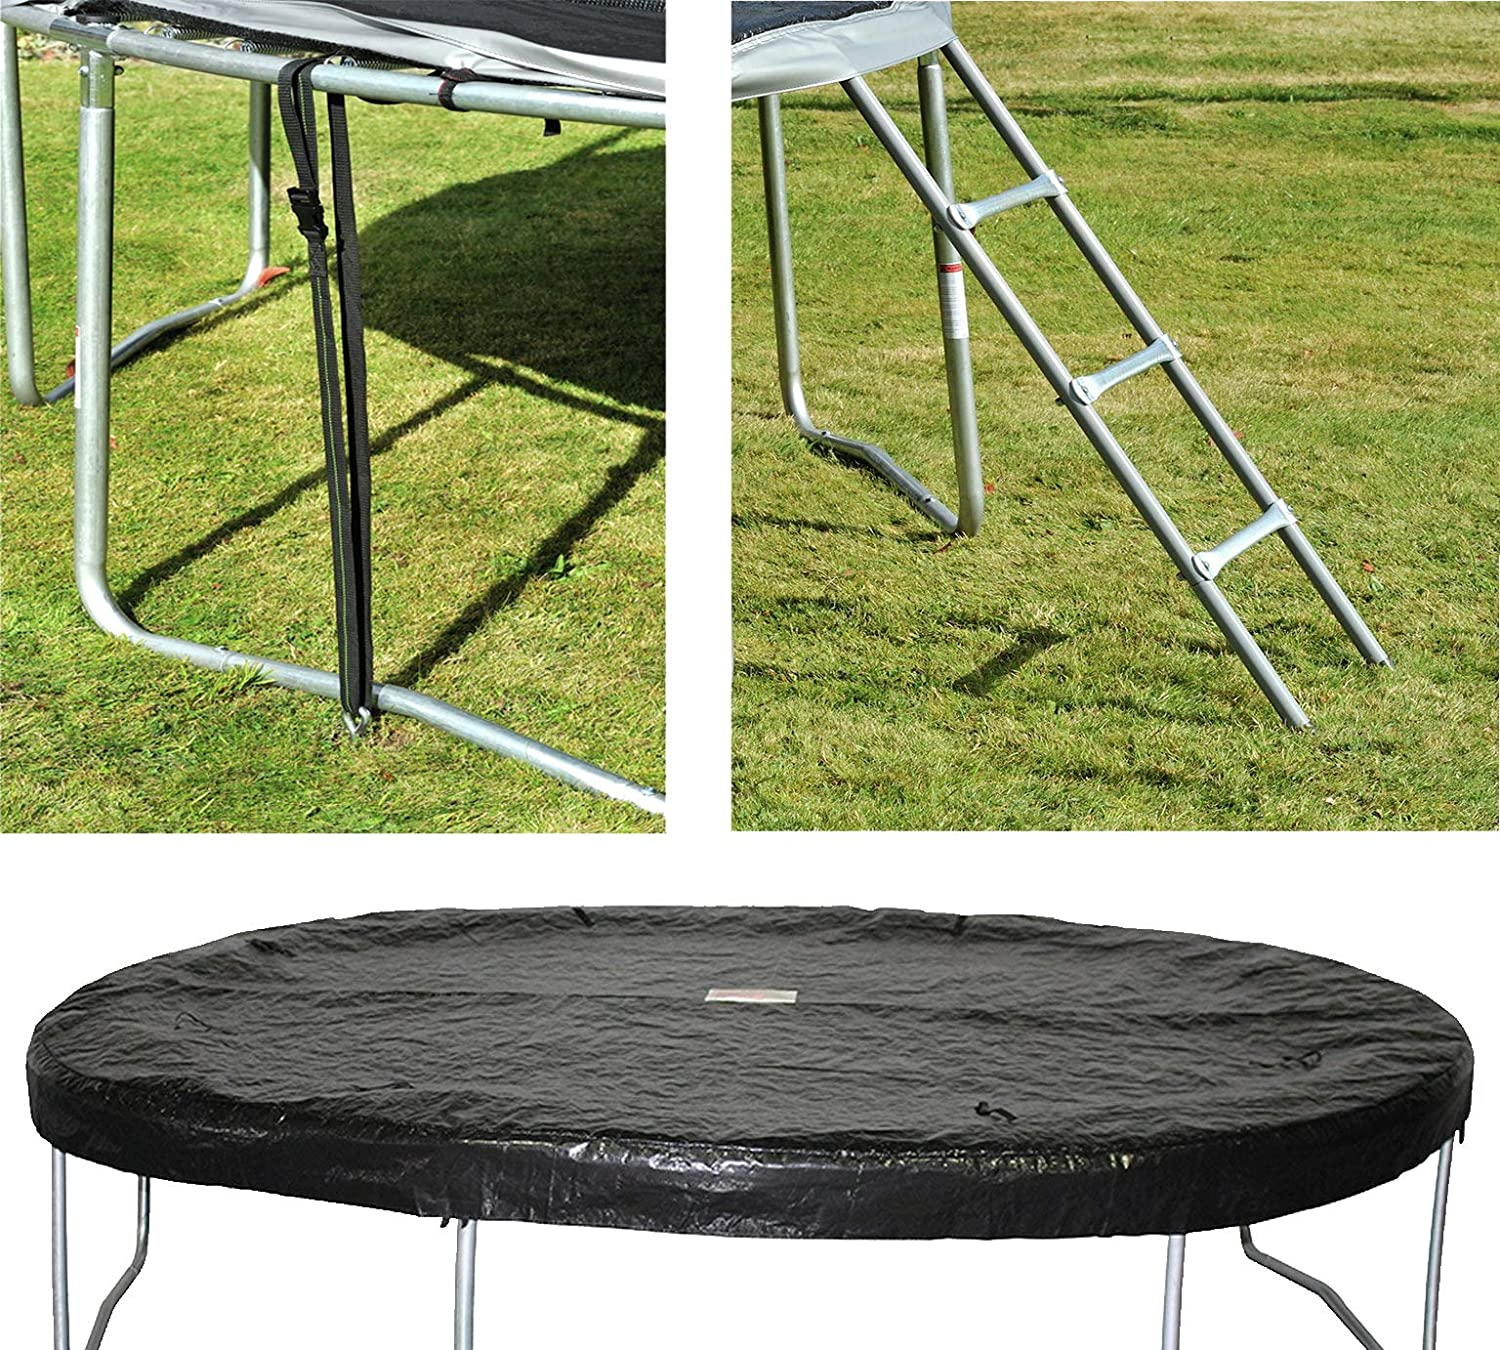 Ladder /& Anchor Kit 10ft Trampoline Accessory Kit Includes Cover